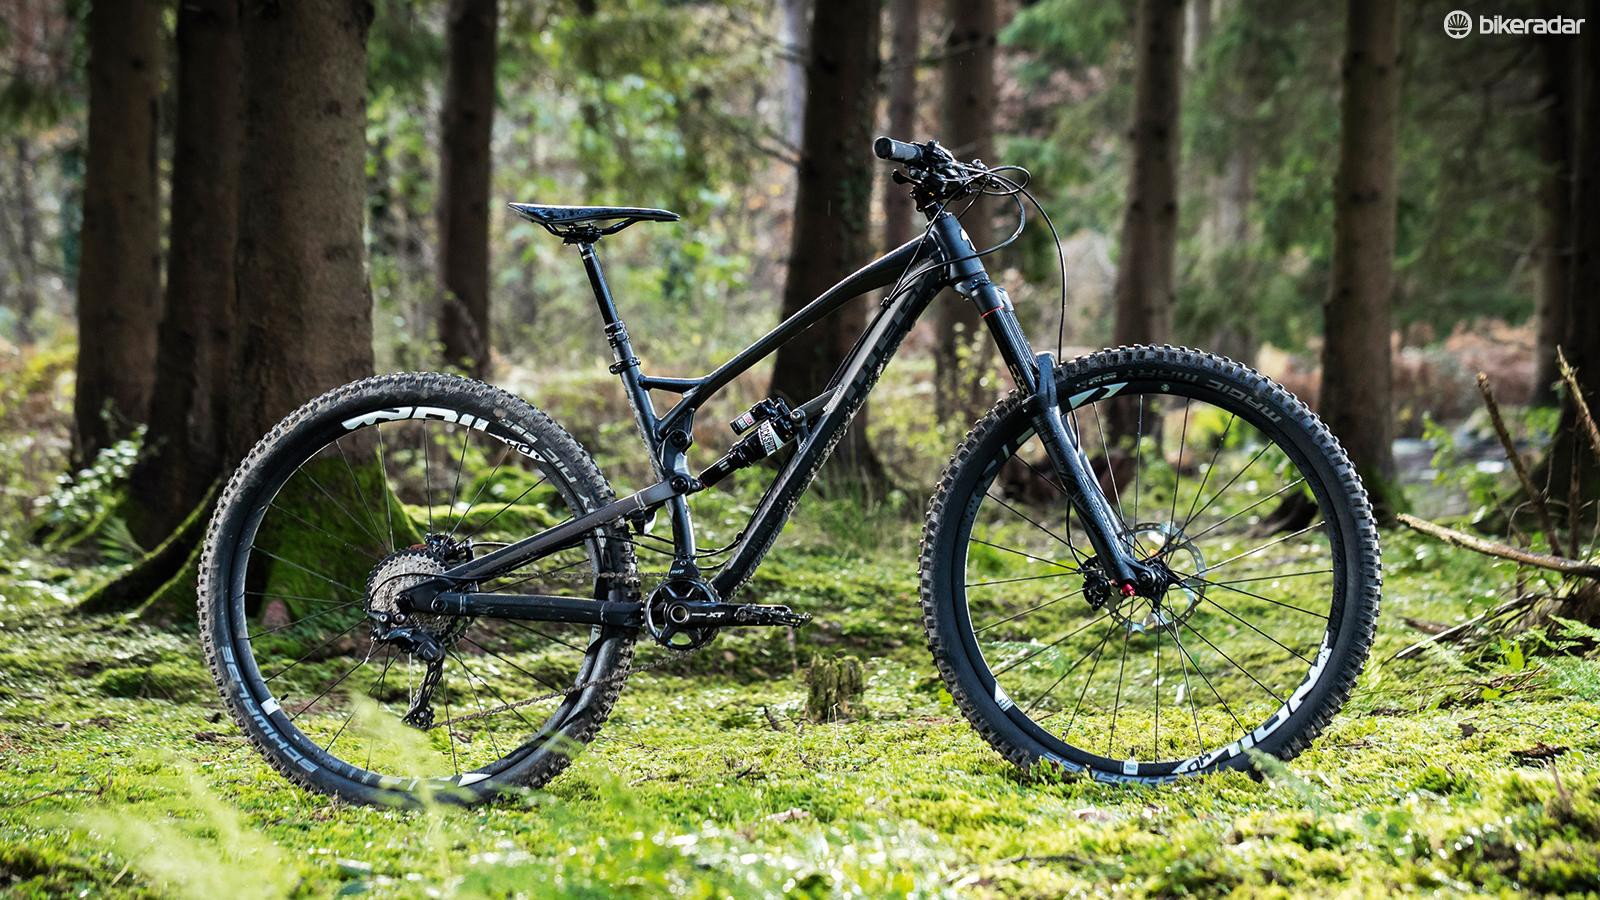 Although progressive towards the end-stroke, I didn't like how the Nukeproof Mega 290 wallowed through the middle of its travel